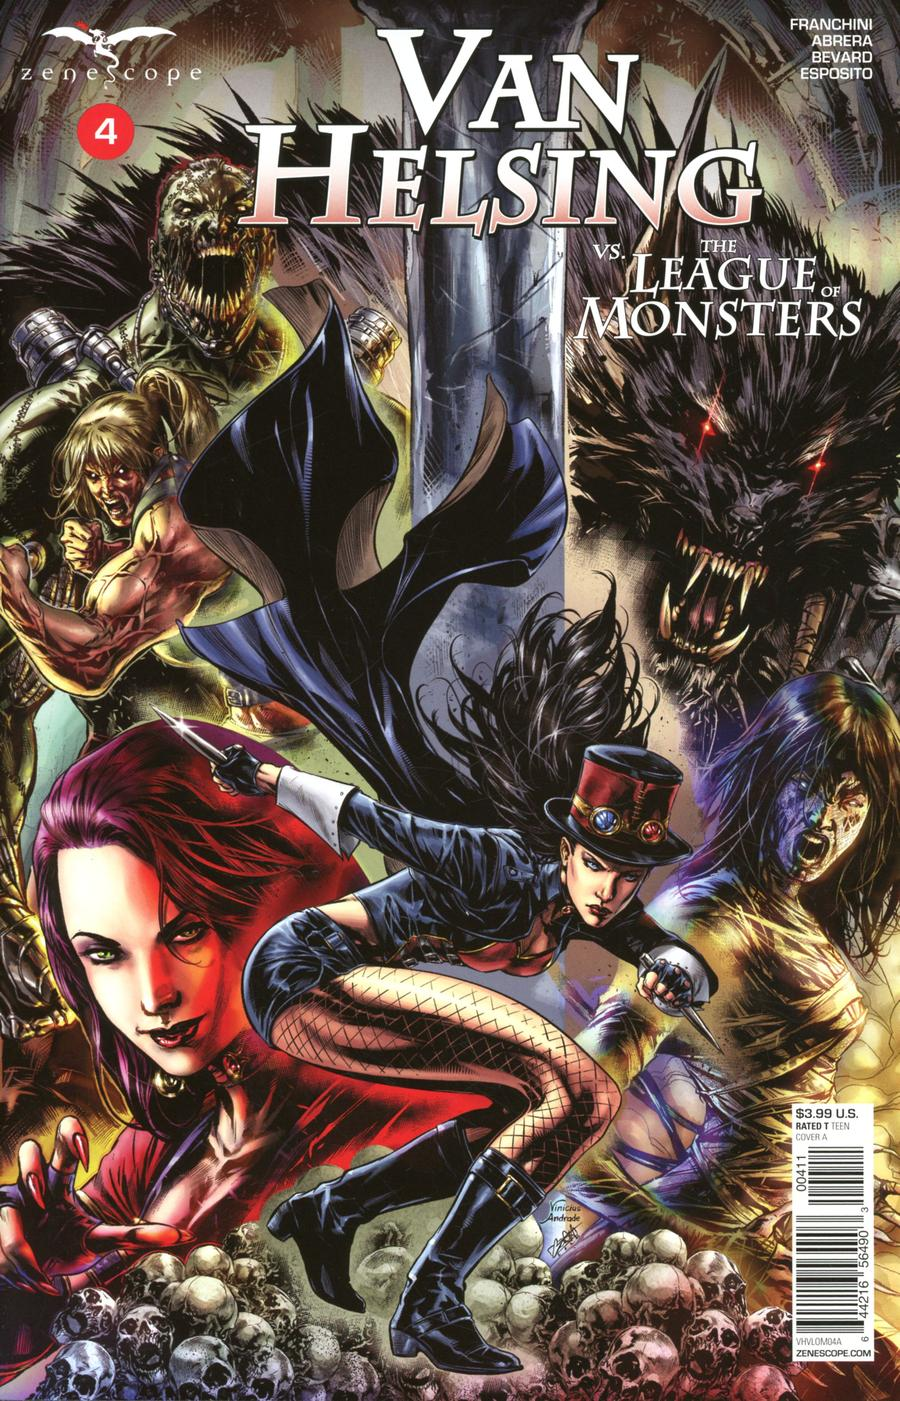 Grimm Fairy Tales Presents Van Helsing vs The League Of Monsters #4 Cover A Caanan White